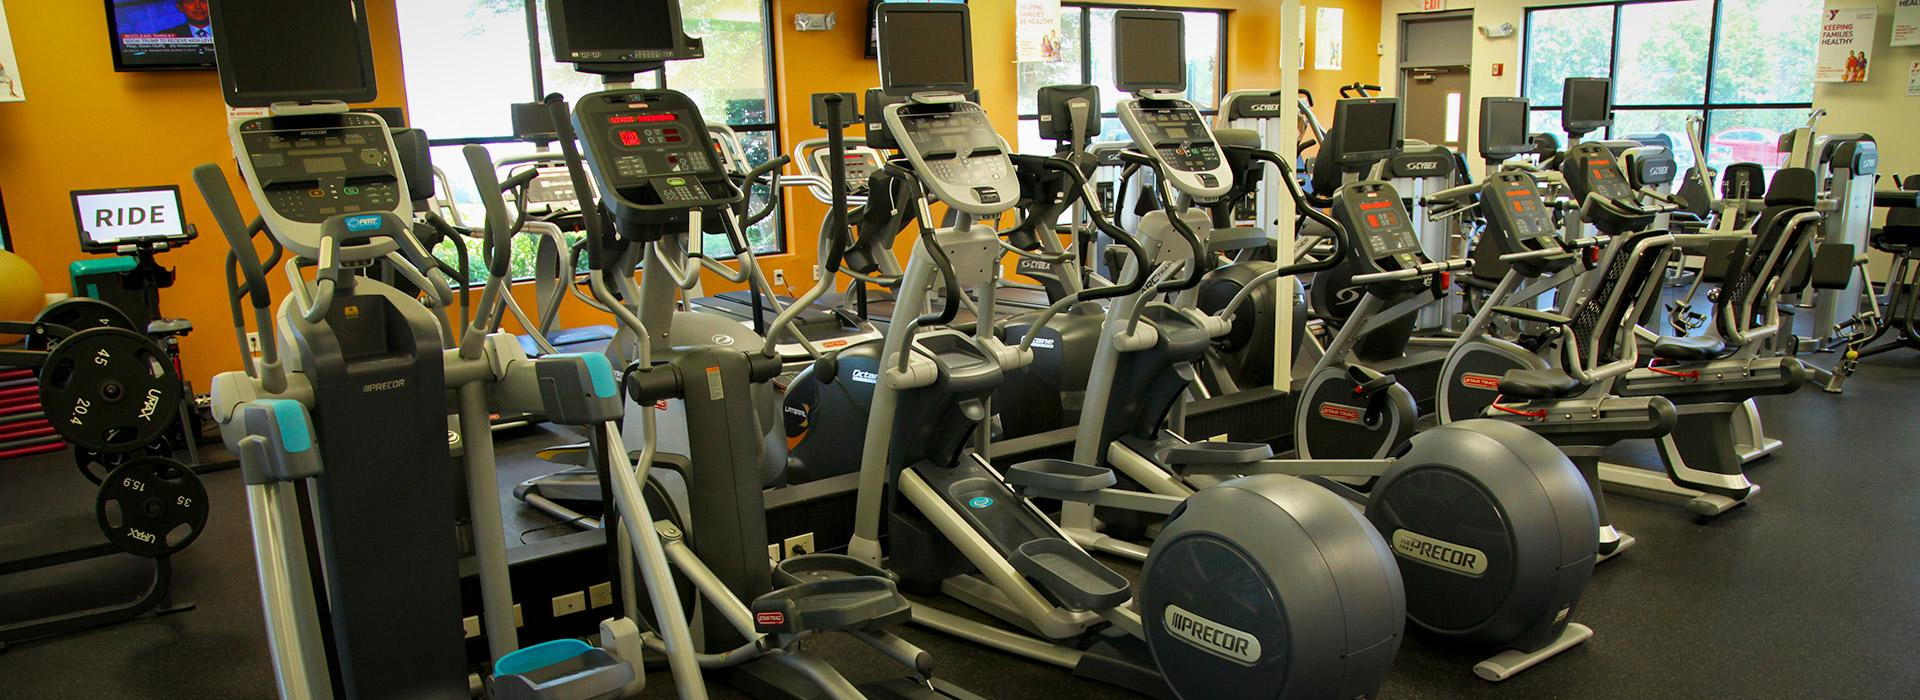 Effingham Street Family YMCA elliptical